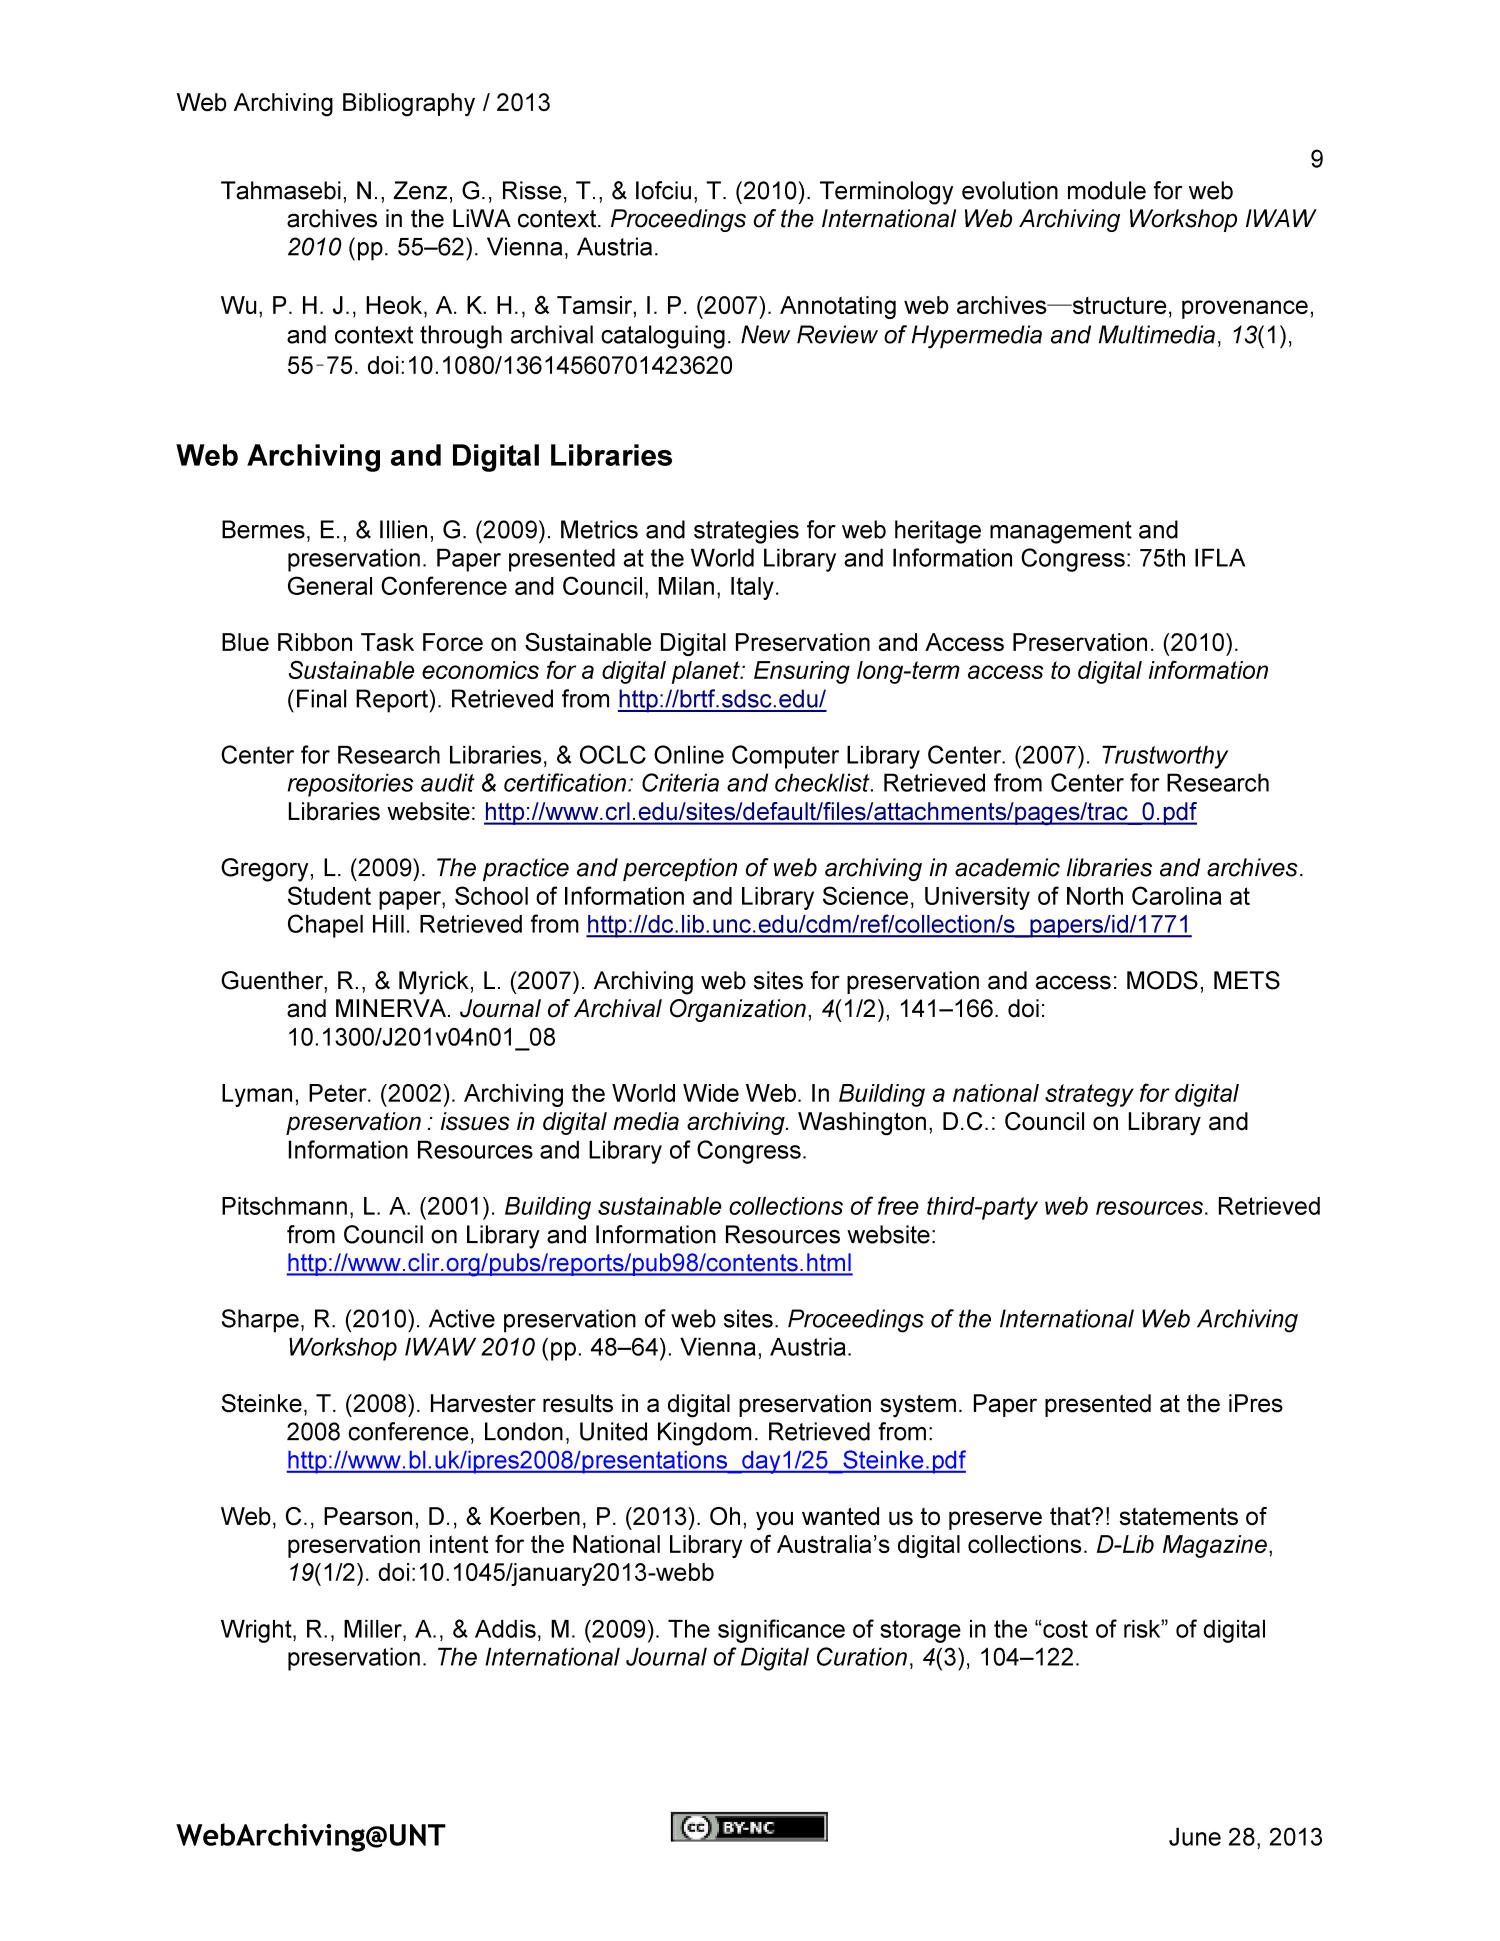 Web Archiving Bibliography 2013 - Page 9 - Digital Library